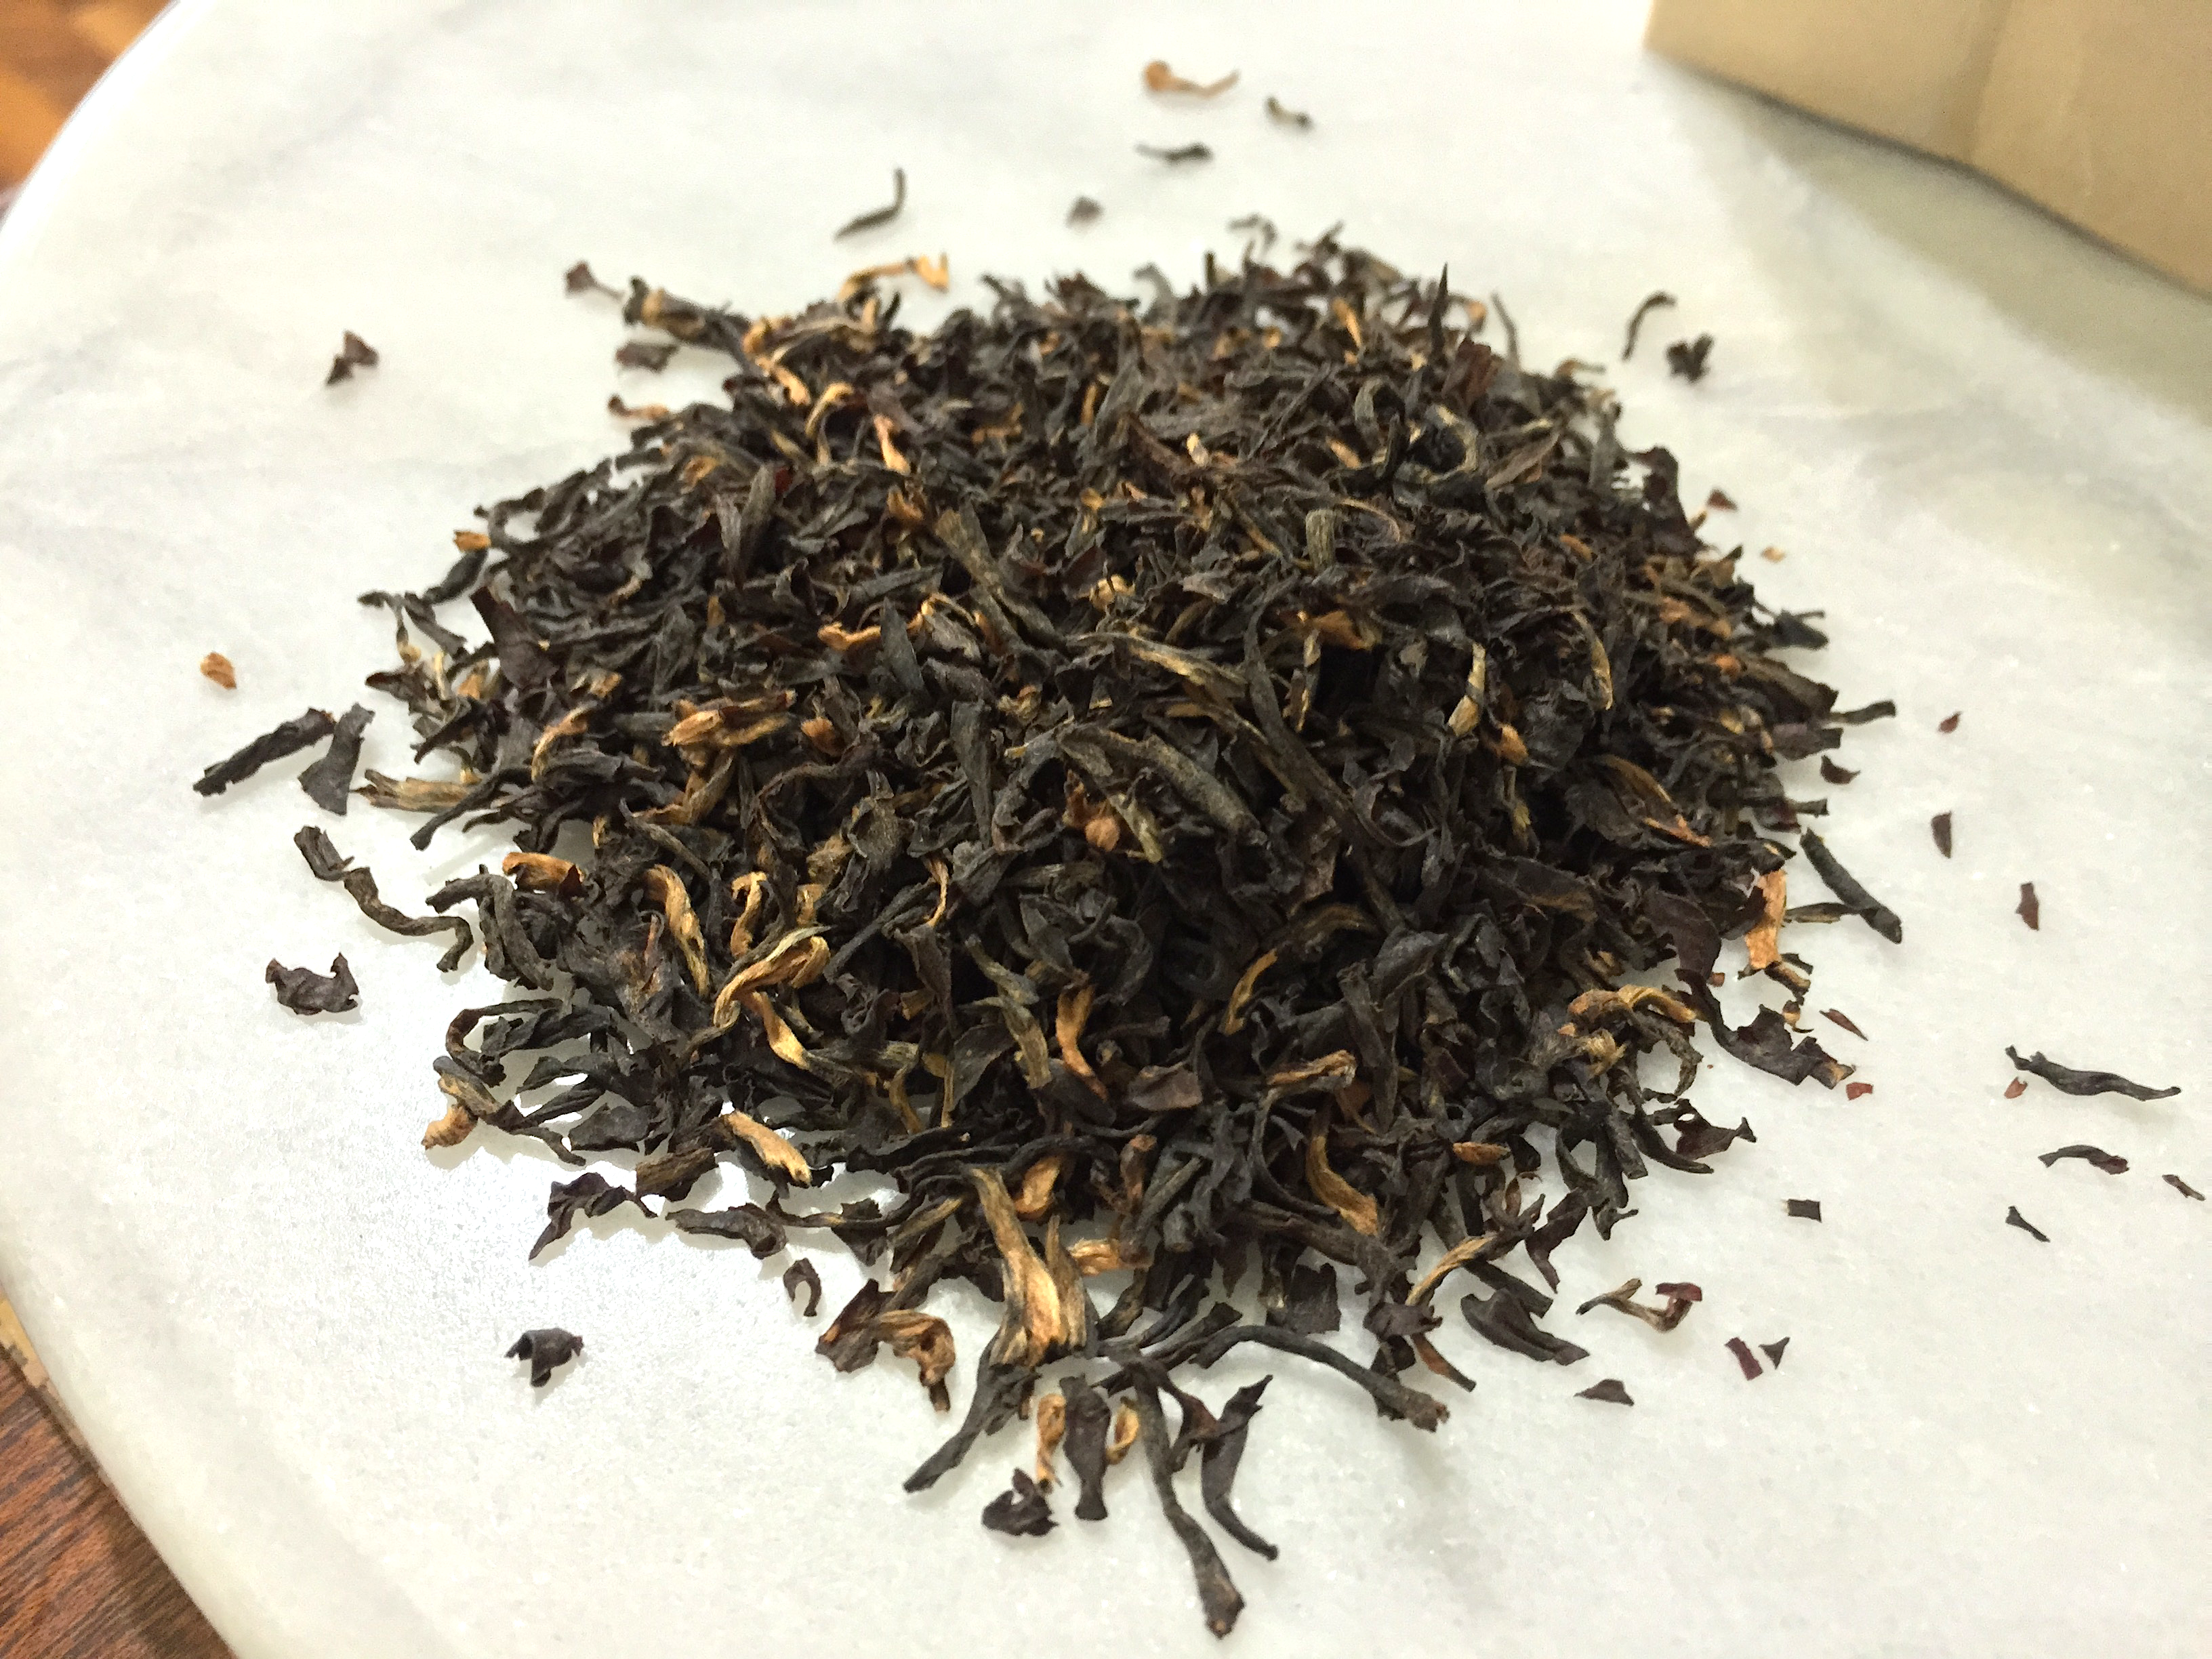 Mangalam Assam Super Premium Loose Leaf by Jocilyn Mors is licensed under a Creative Commons Attribution 4.0 International License.